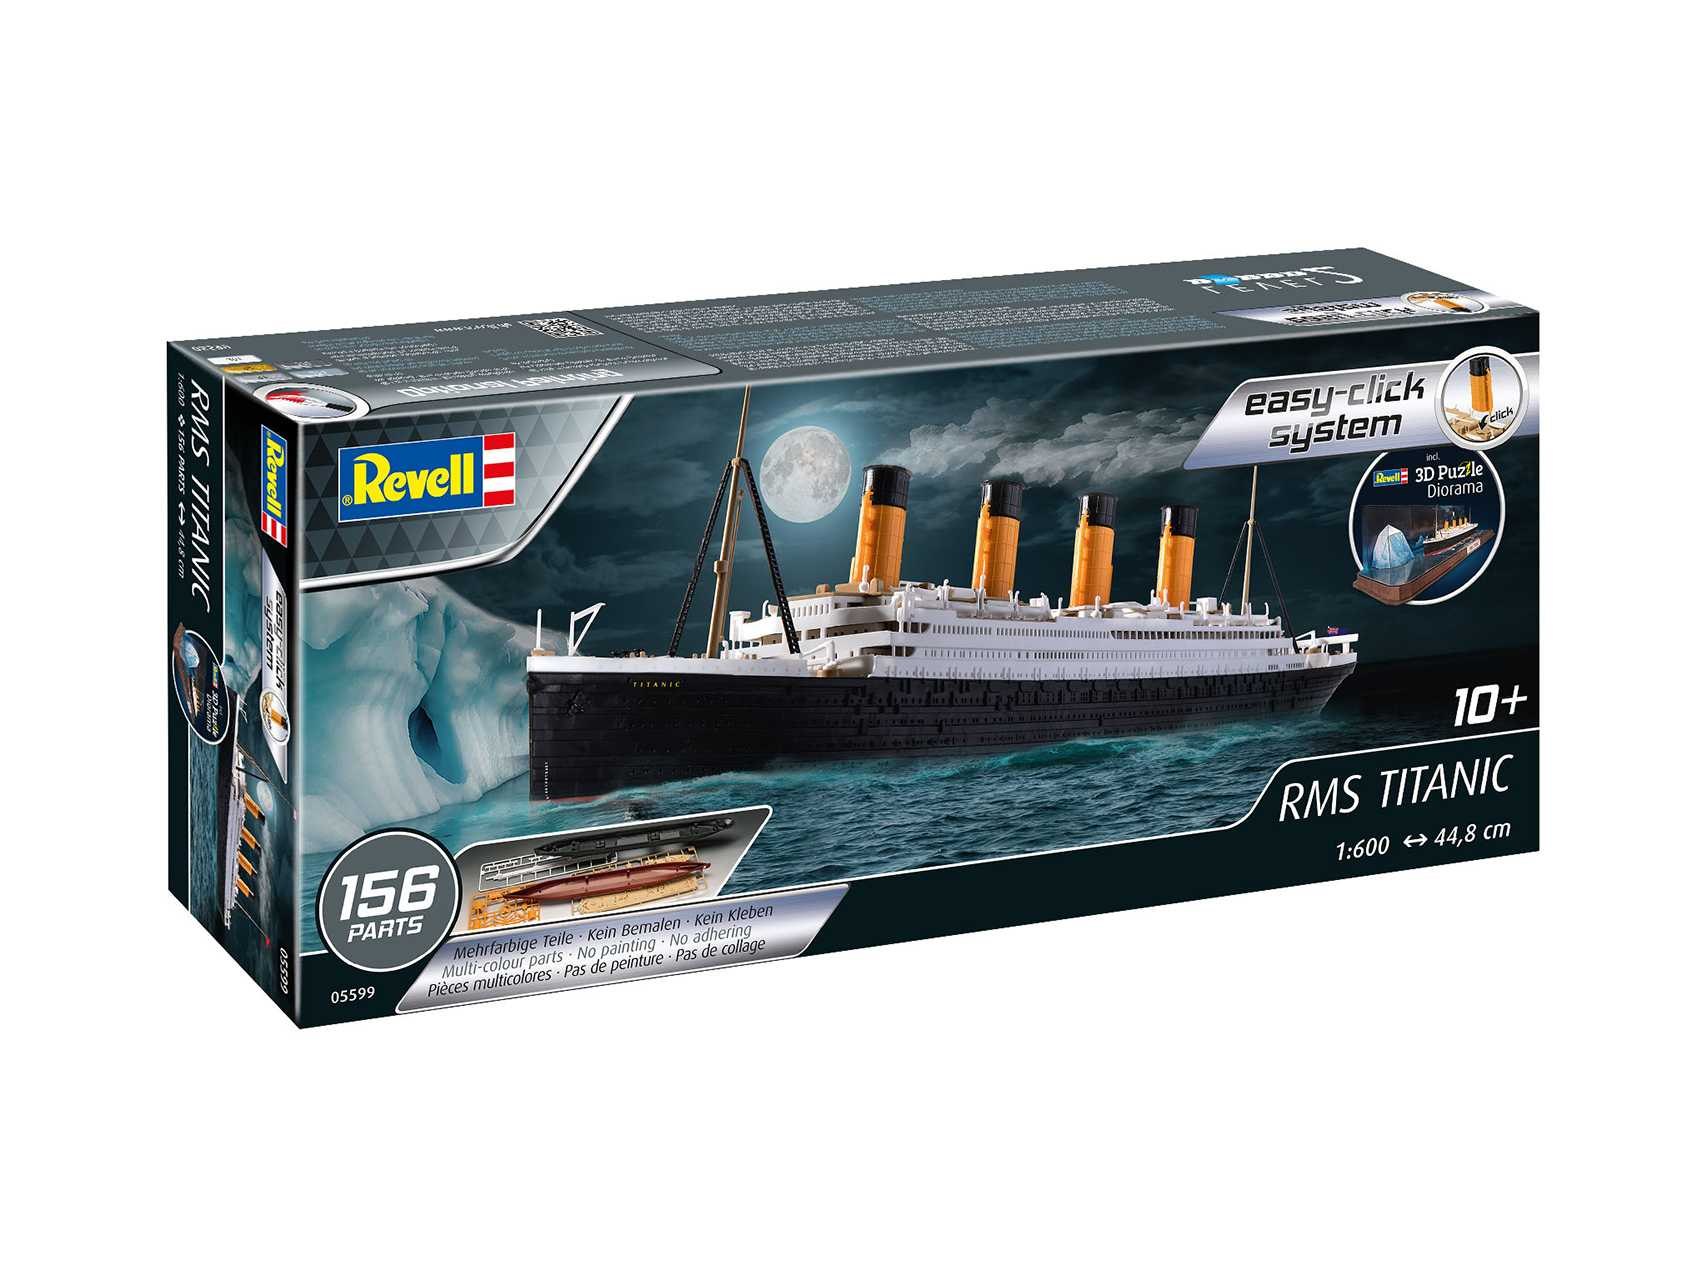 1:600 RMS Titanic & 3D Puzzle (Easy-Click System)